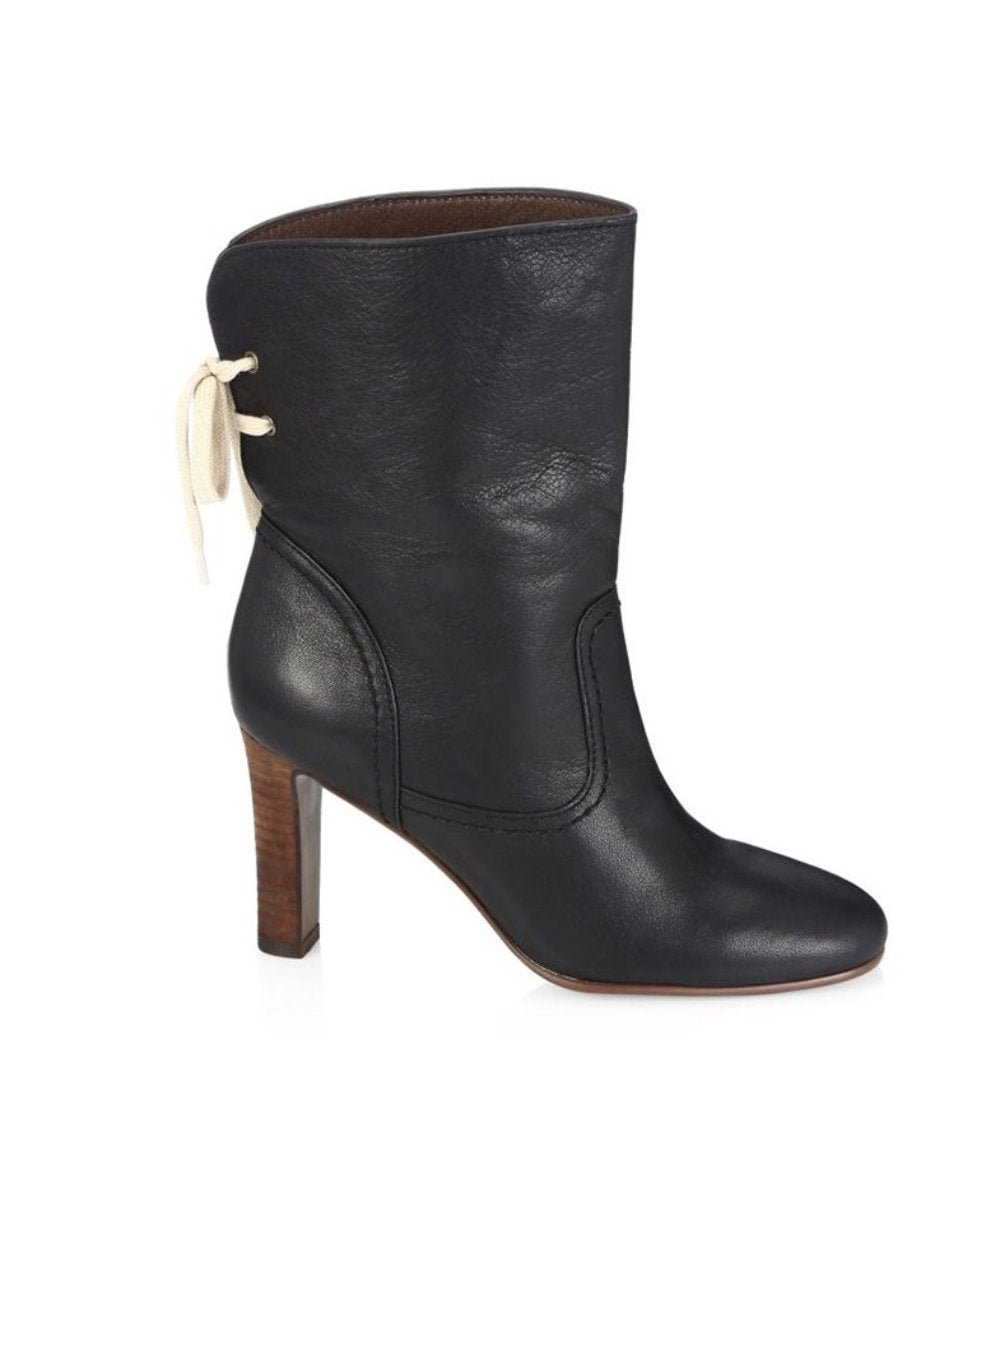 SEE BY CHLOÉ | Lara Boot in Black